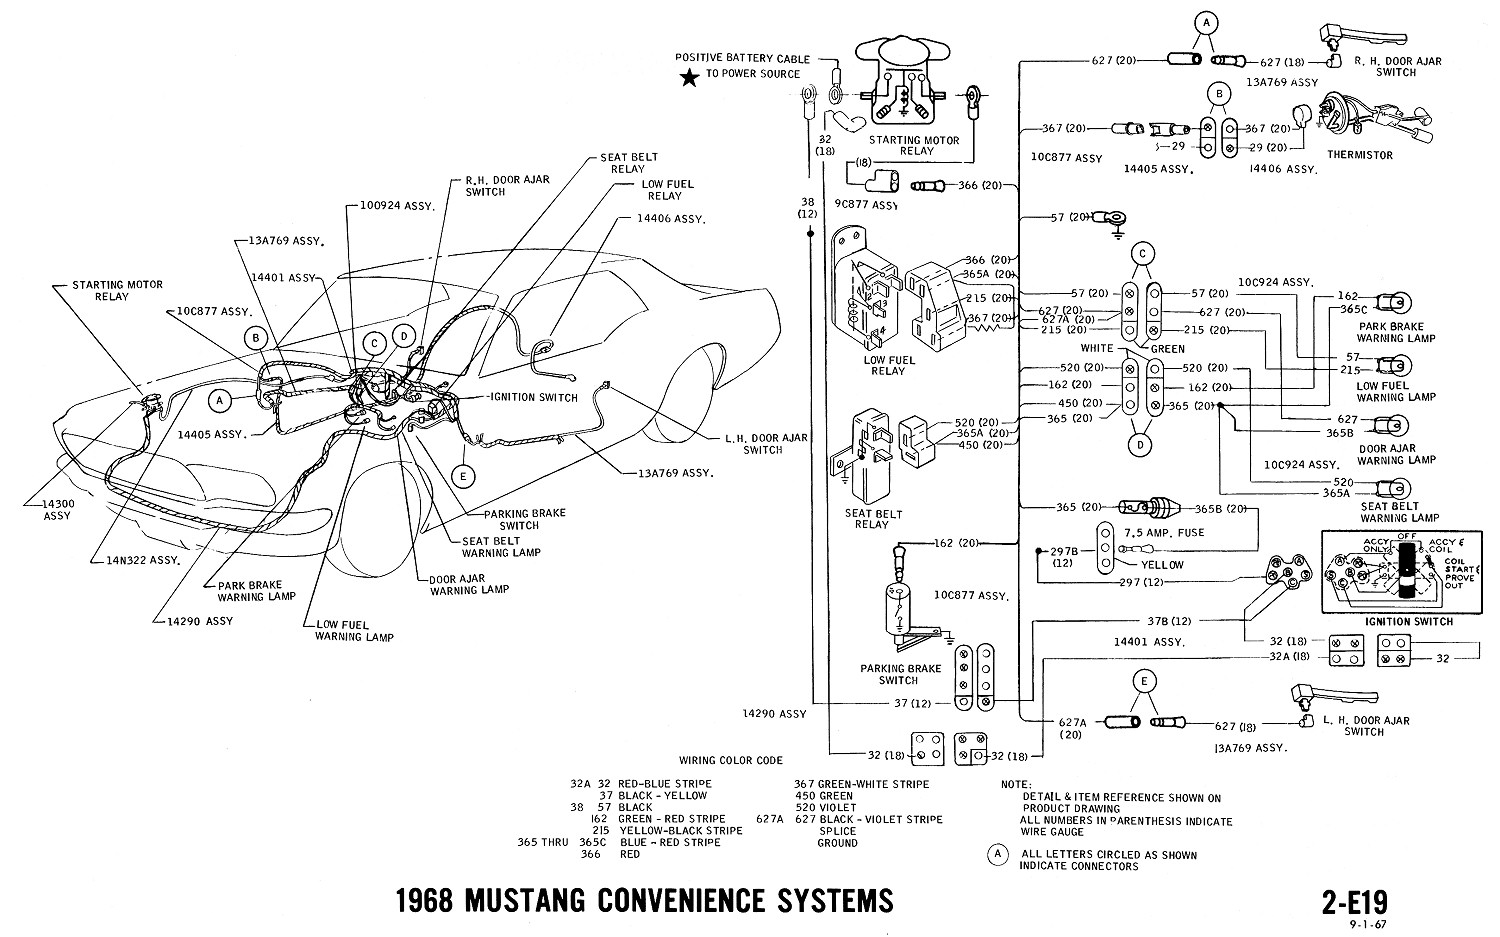 92 mustang headlight wiring diagram